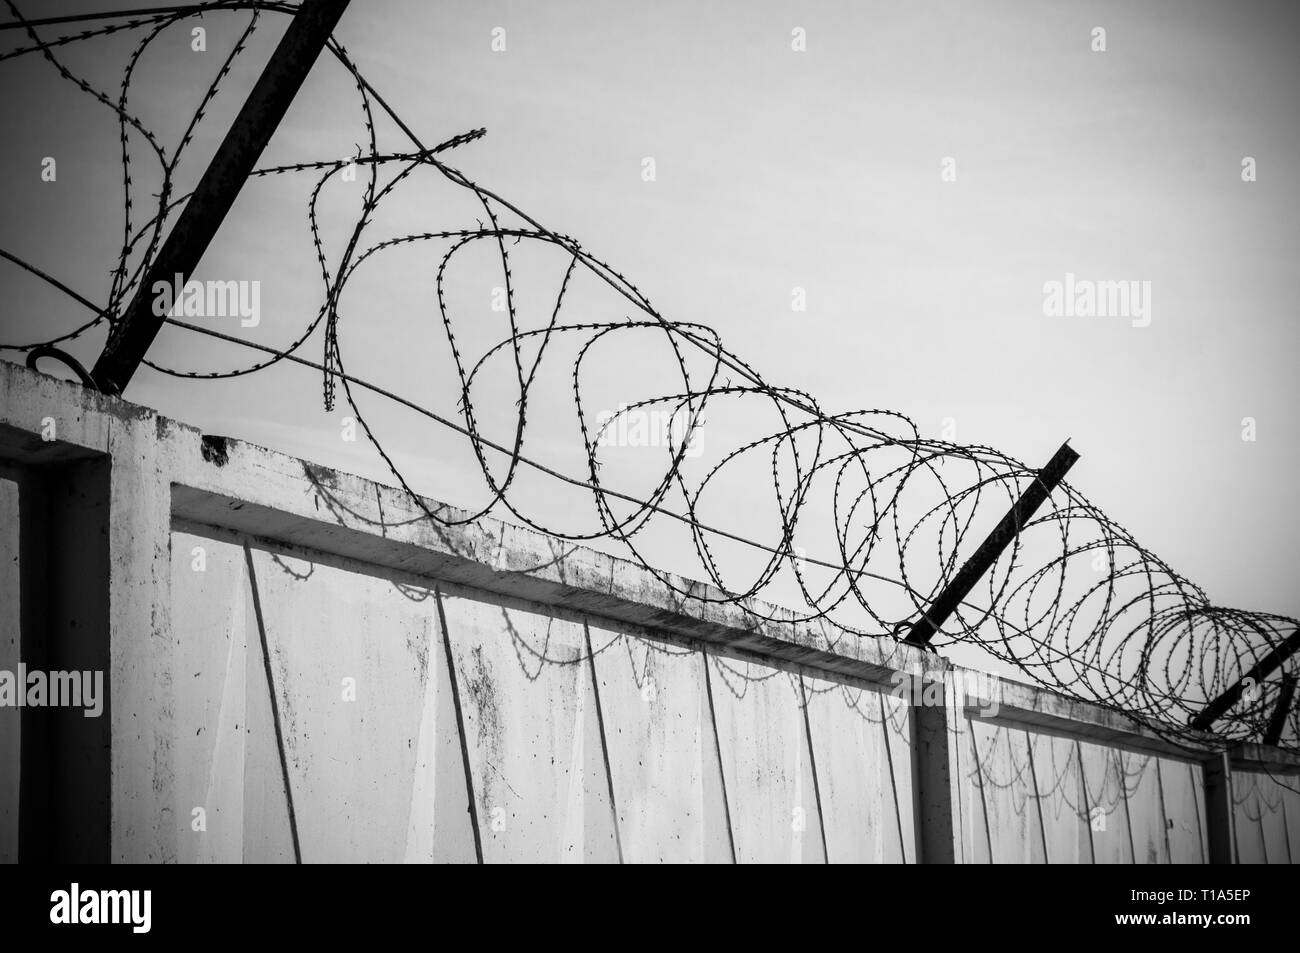 Concrete wall with razor barbed tape wire on blue sky background - Stock Image